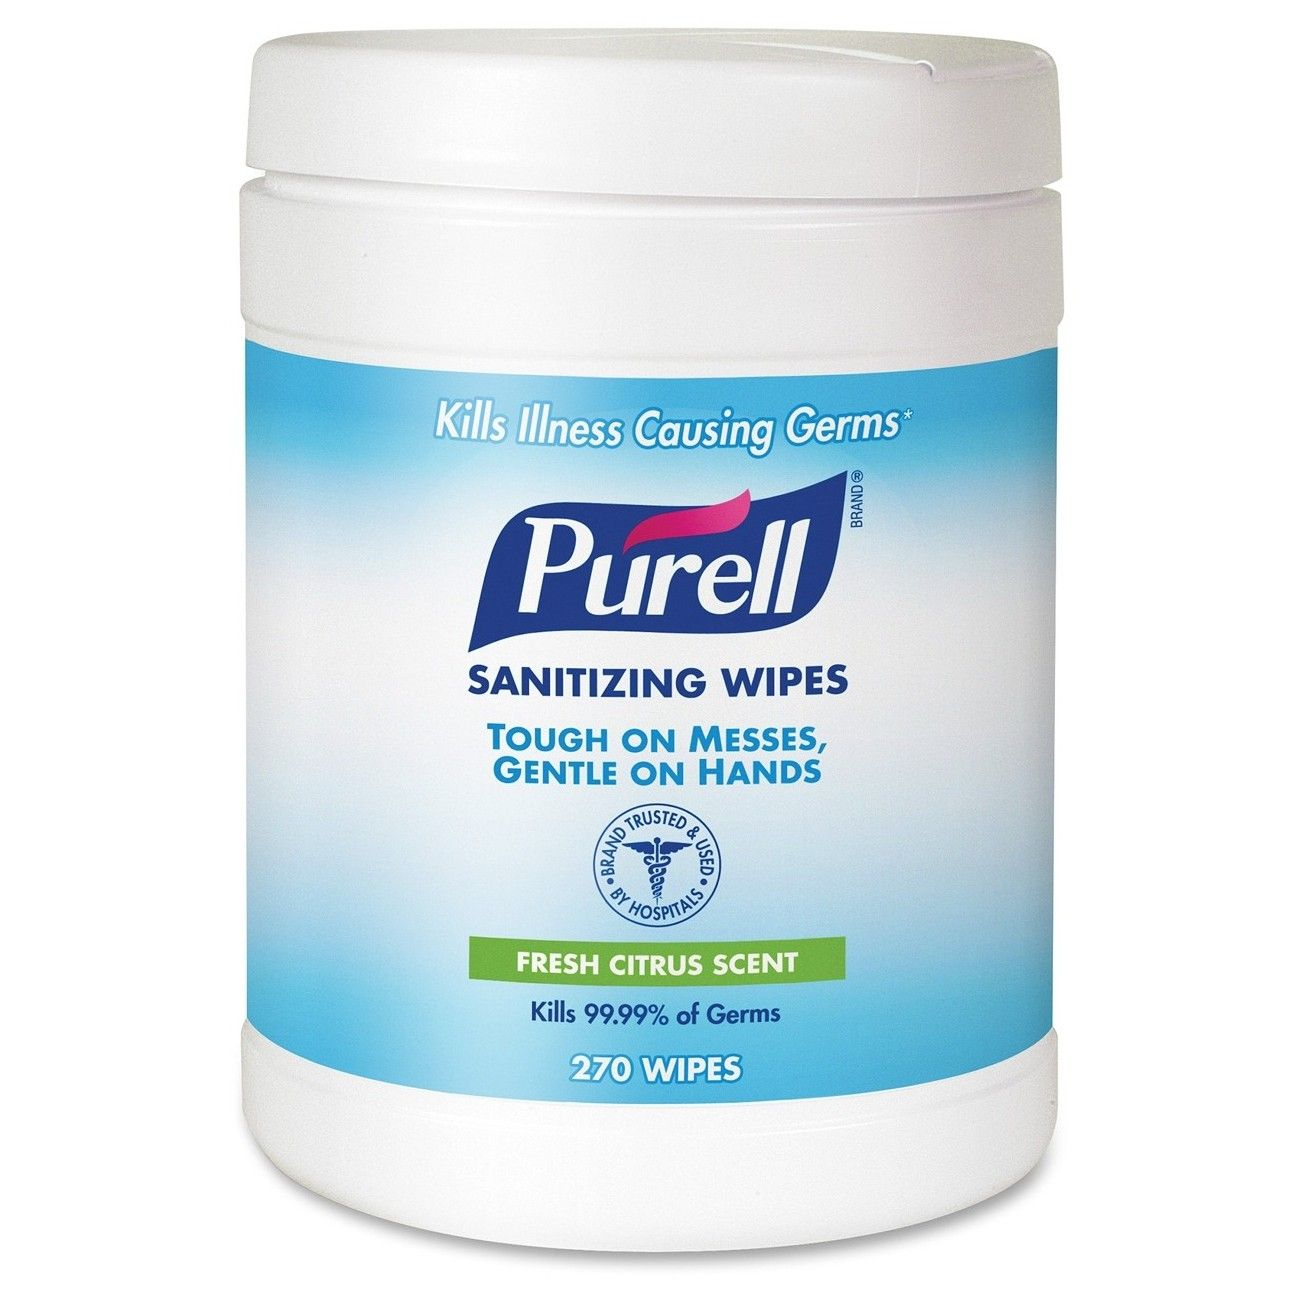 Feel Better Knowing Purell Wipes Kill 99 99 Of Illness Causing